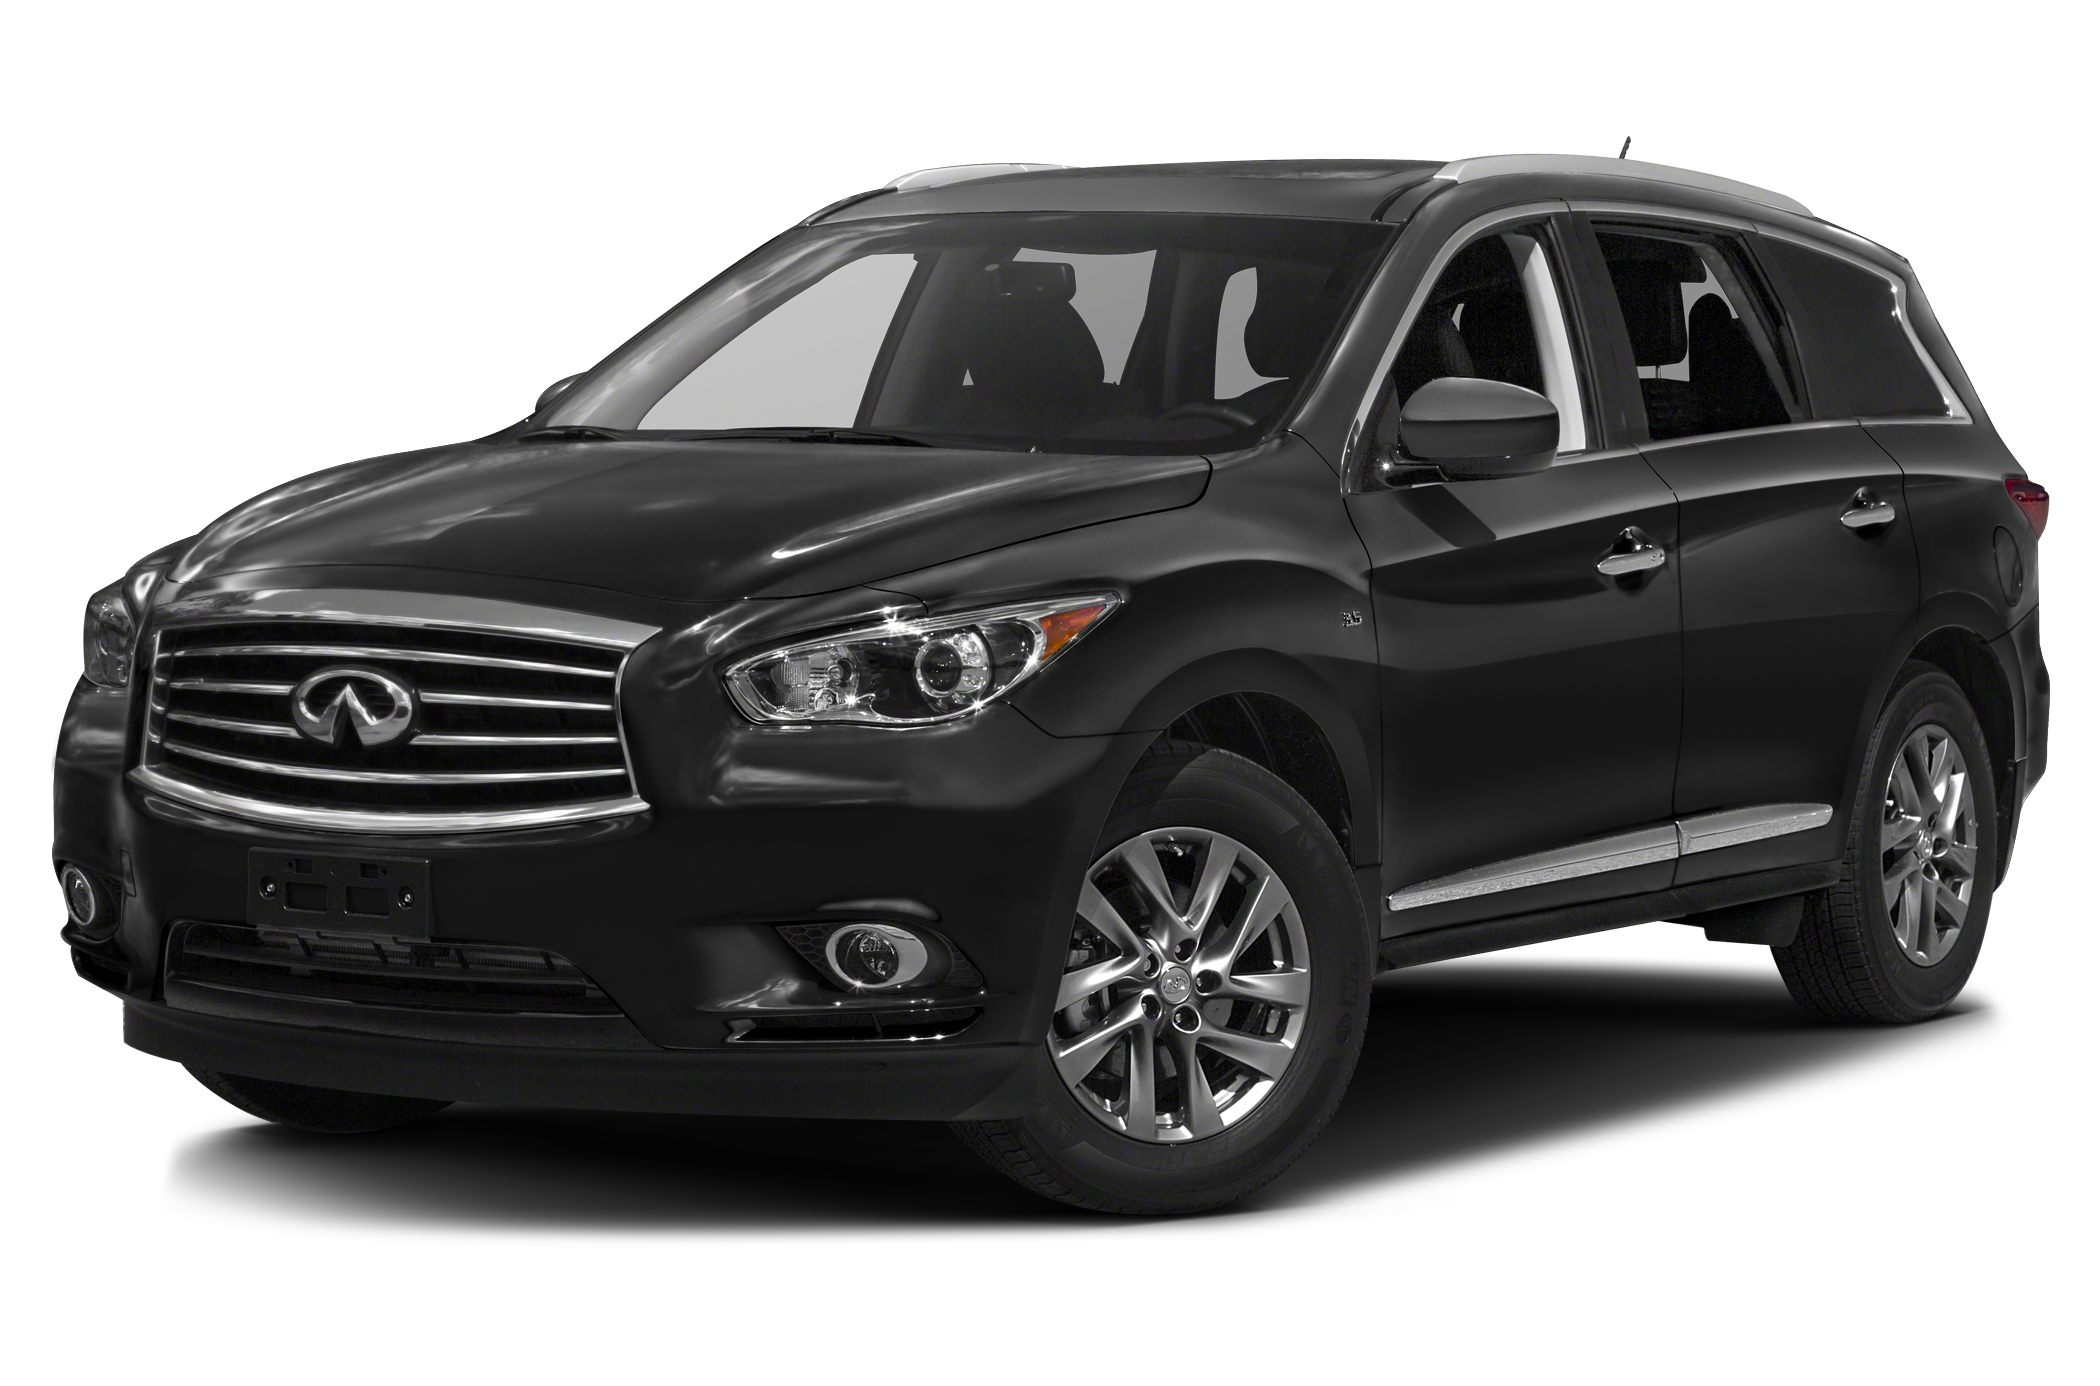 2015 Infiniti QX60 Base SUV for sale in Ann Arbor for $53,125 with 0 miles